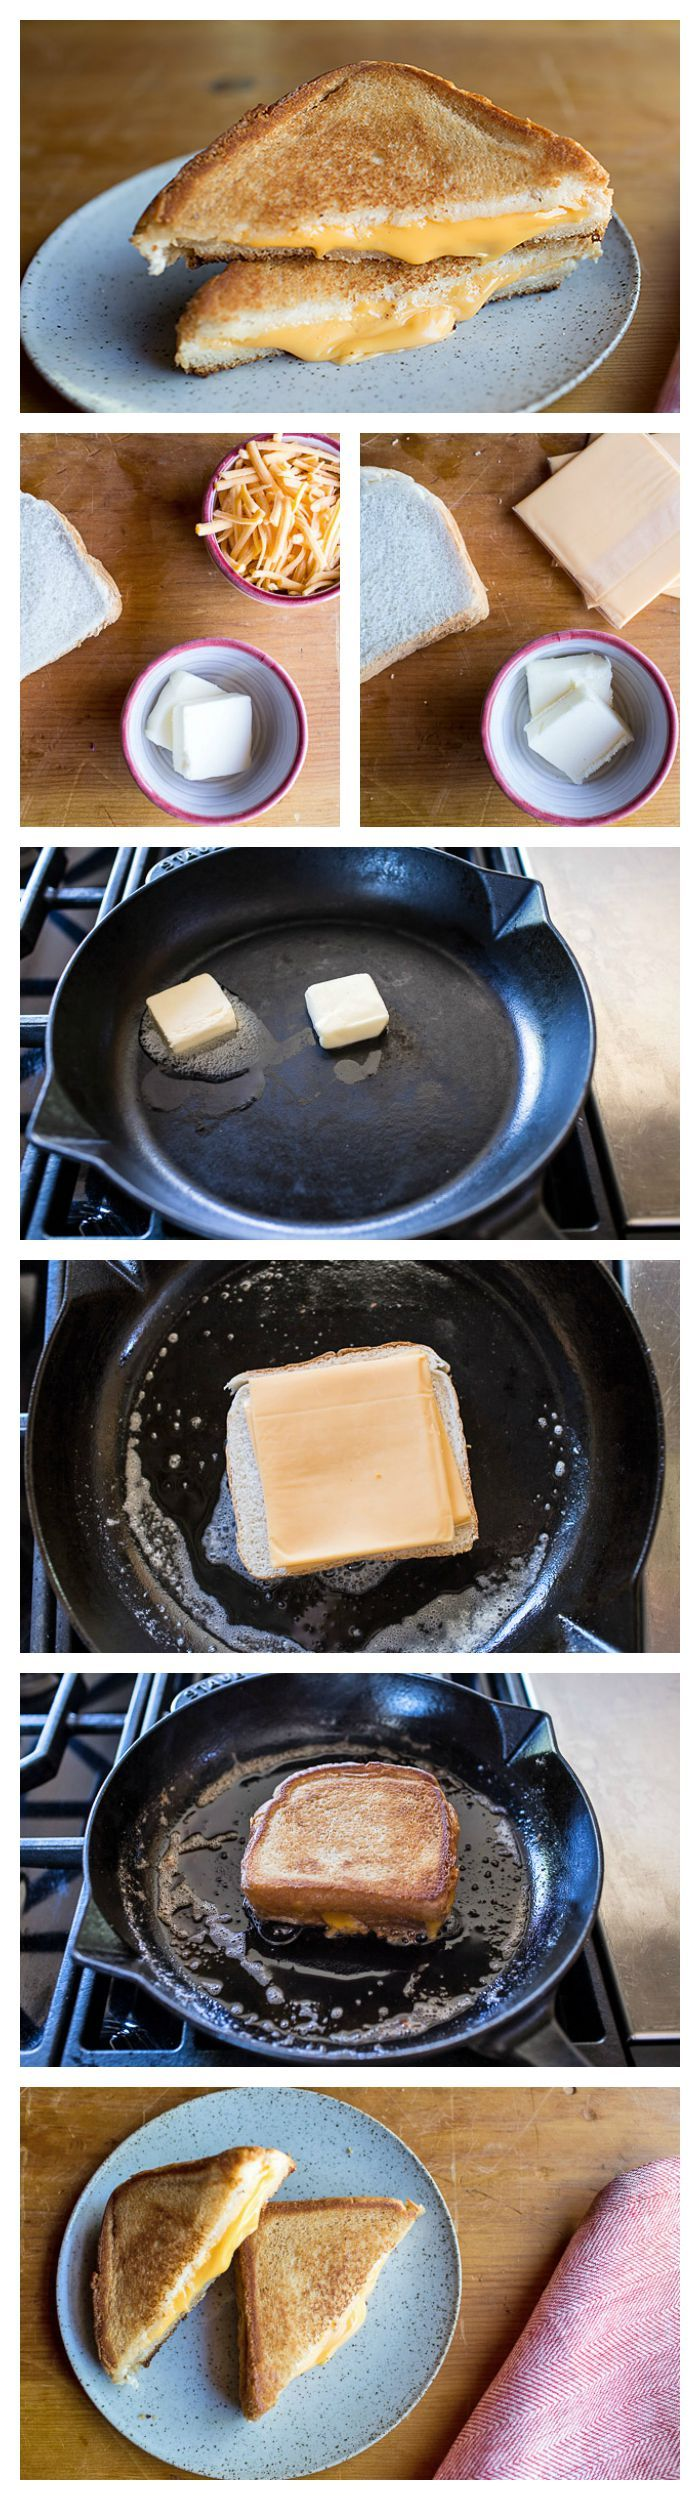 If there's one thing that everyone should know how to make perfectly, it's a classic grilled cheese sandwich.